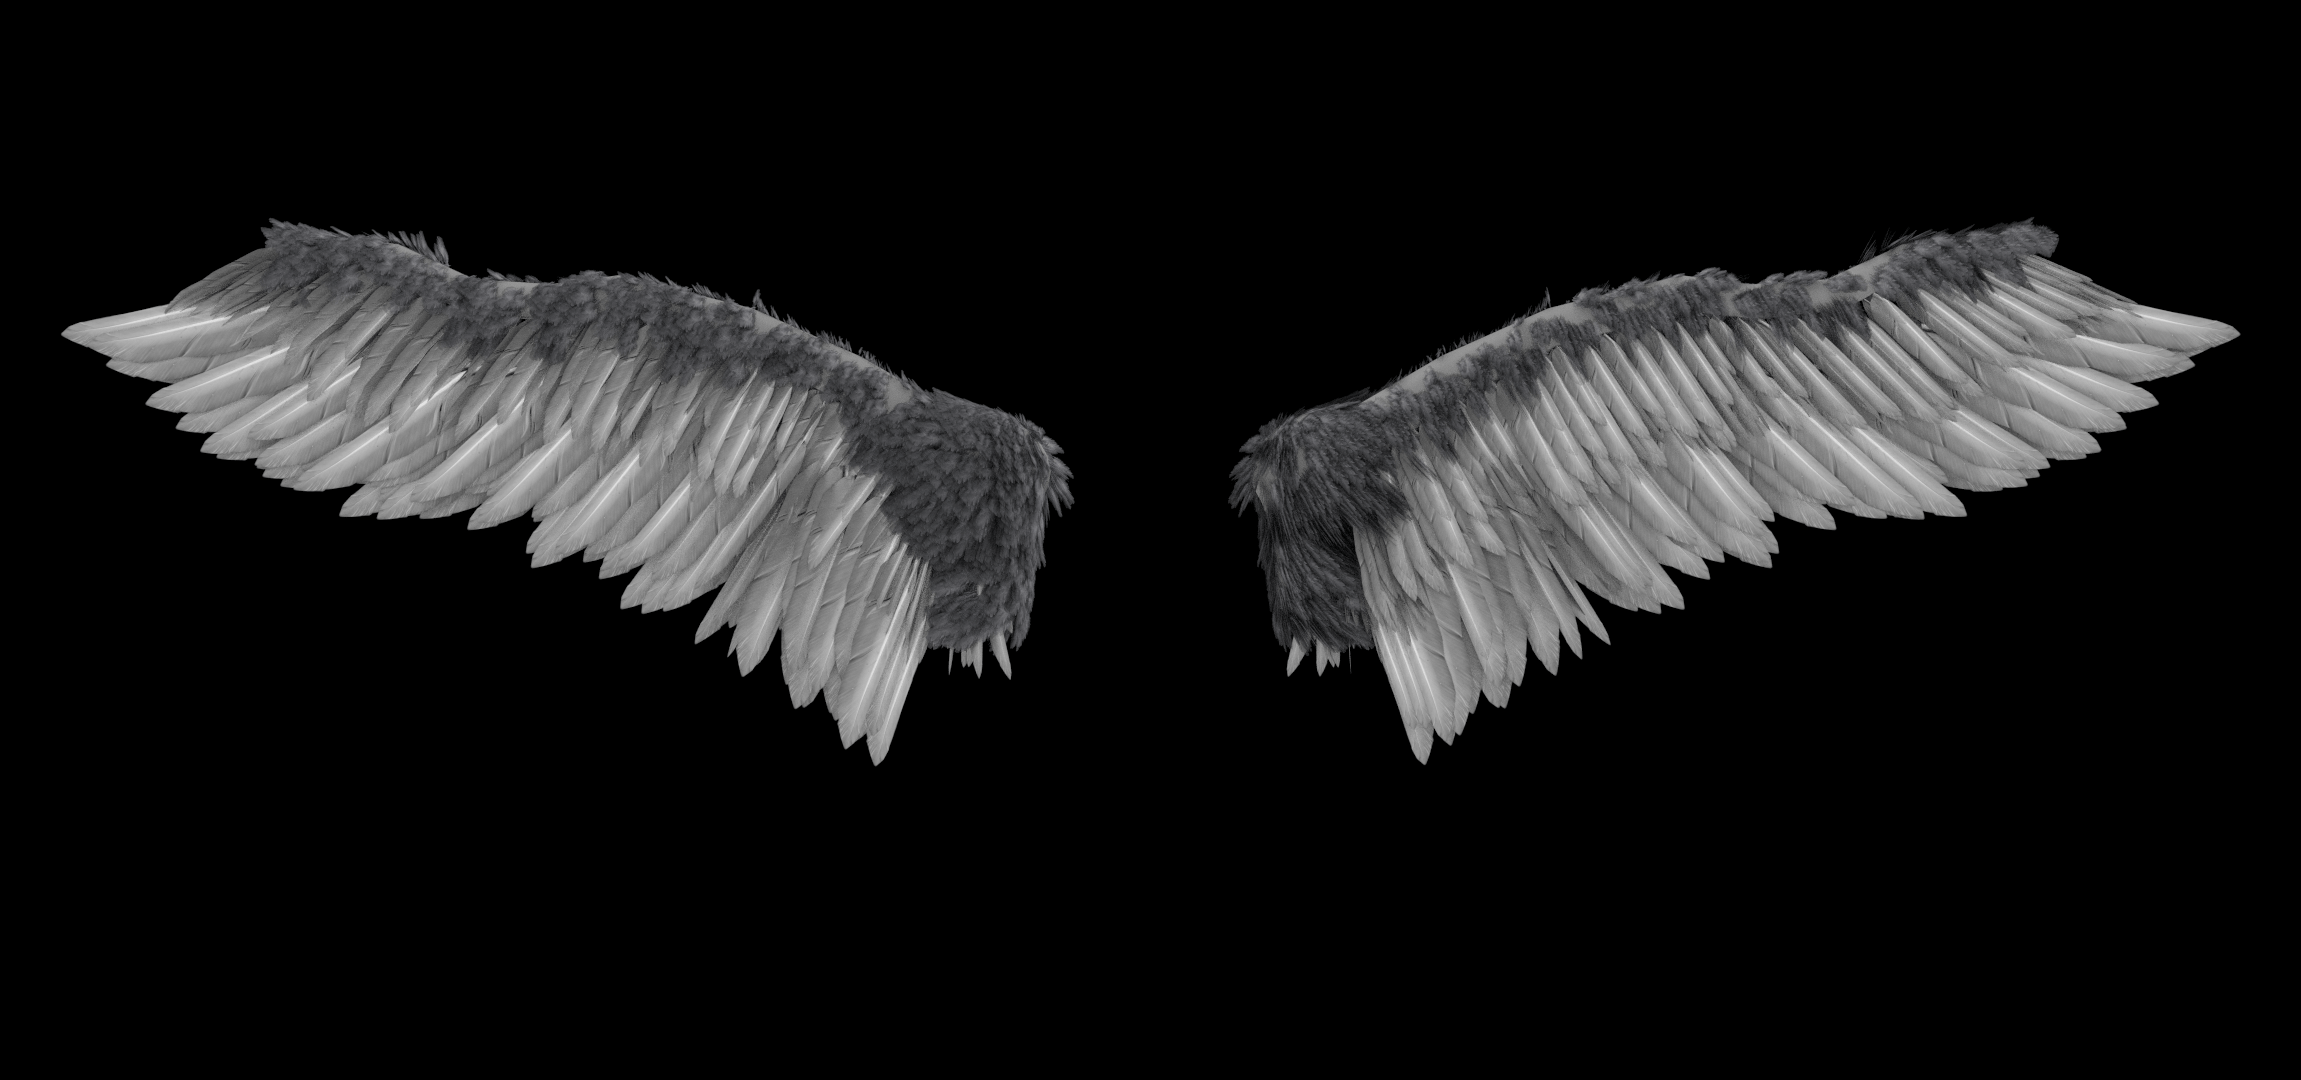 Animated Gif Desktop Wallpaper Angel S Wings 5 19 13 Flickr Photo Sharing